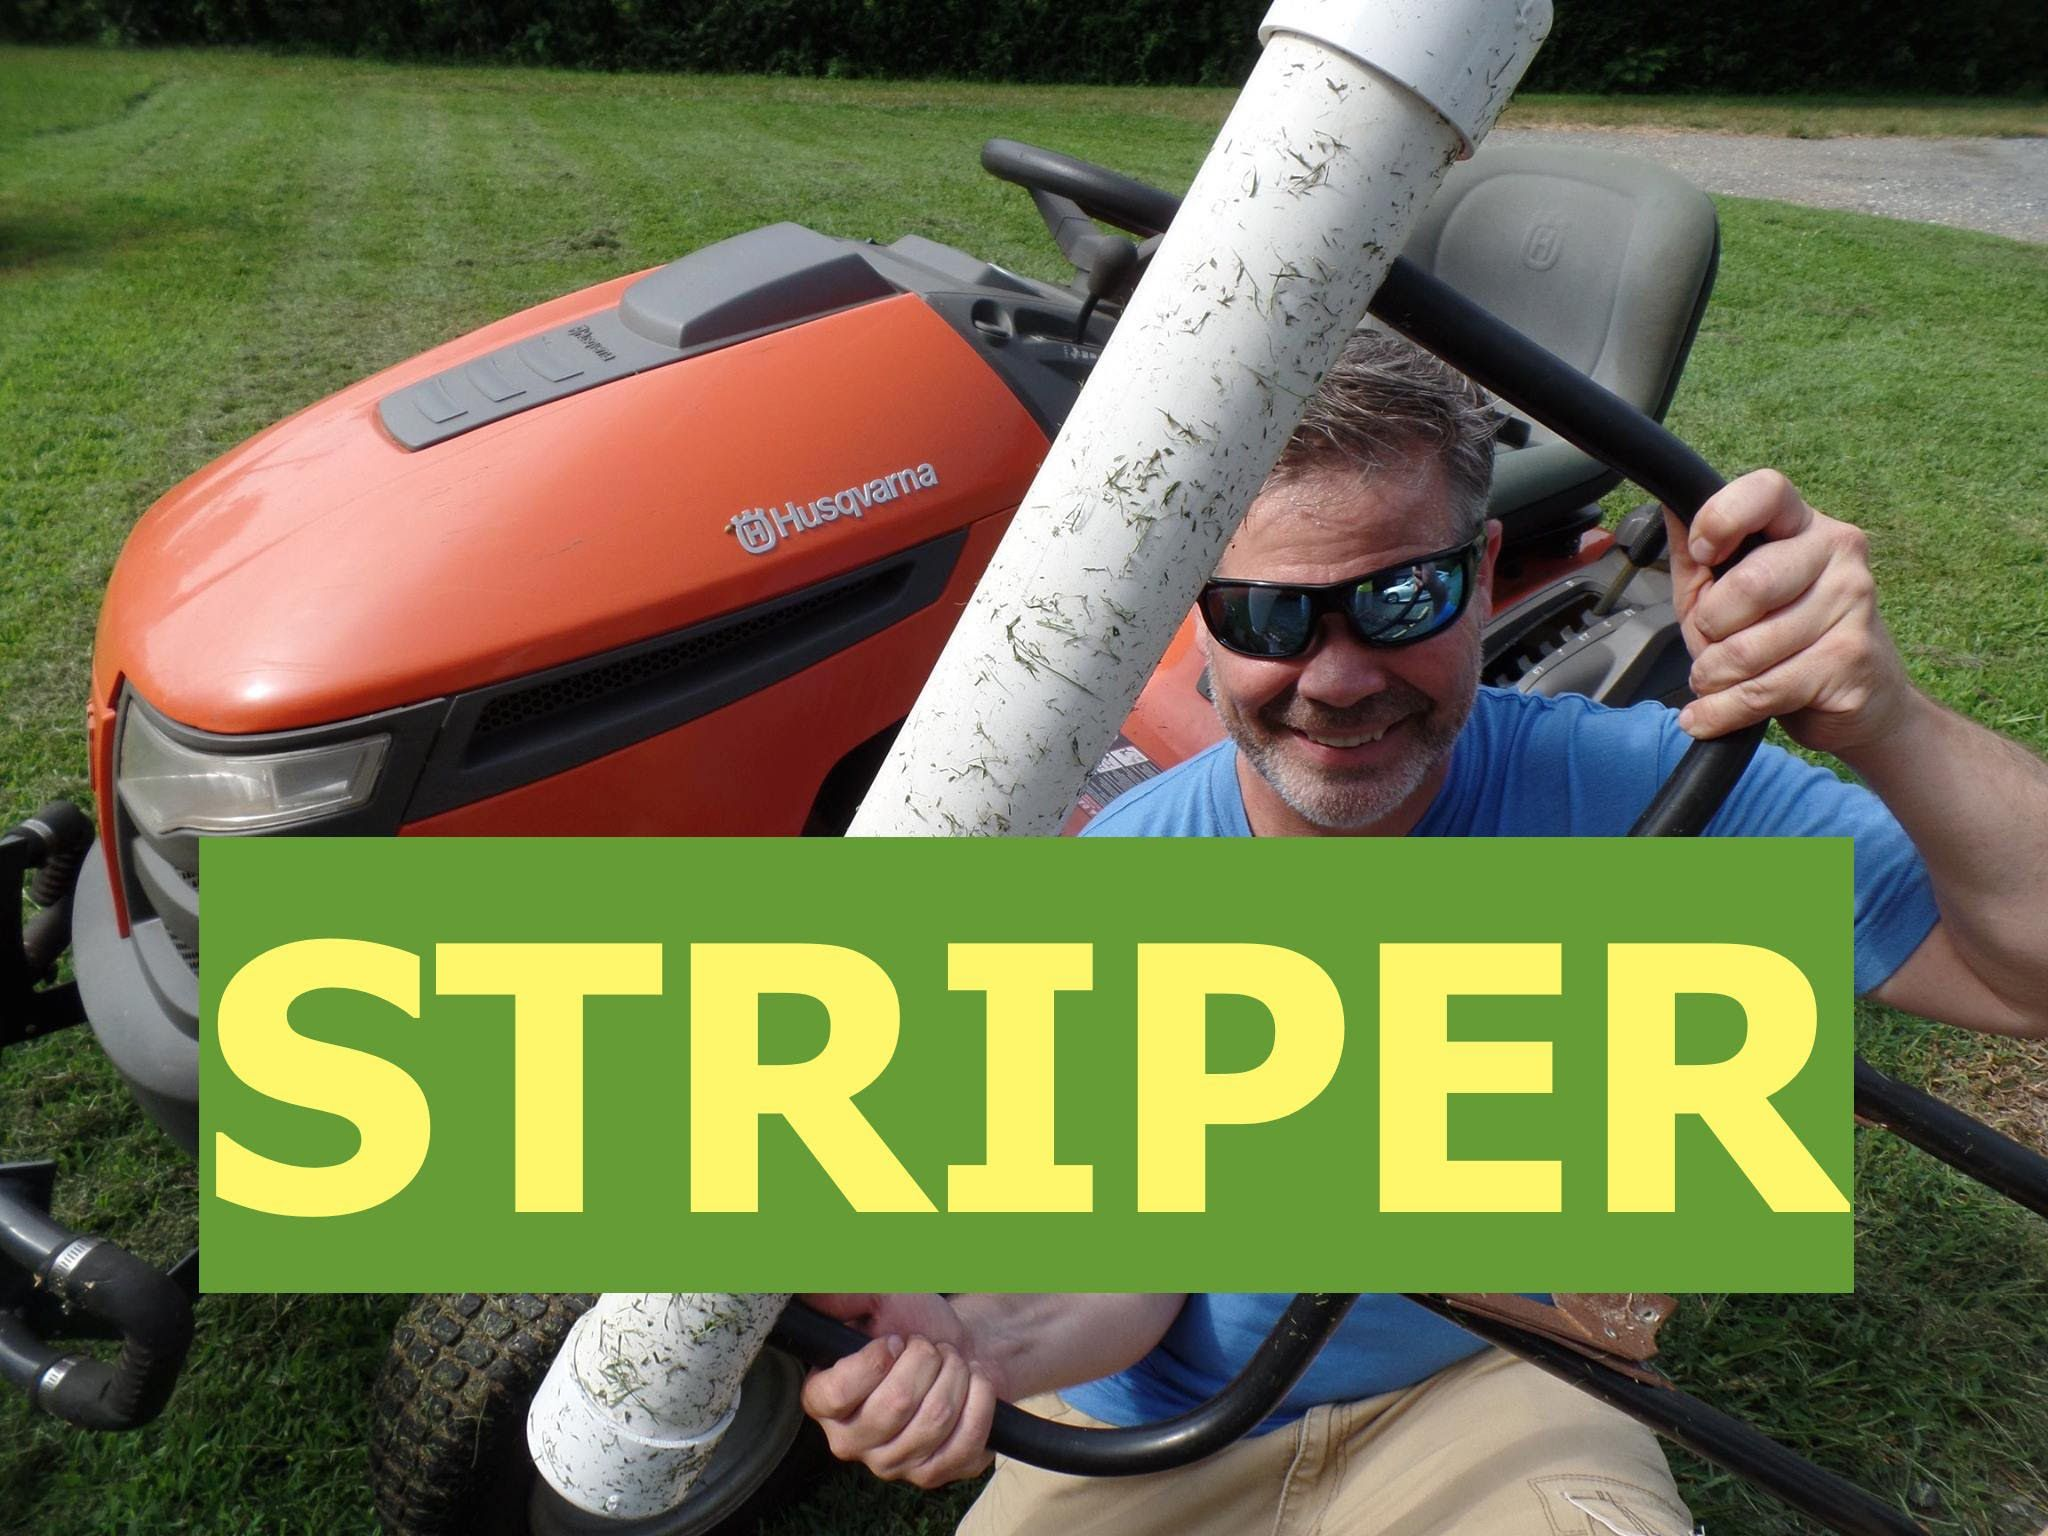 DIY Lawn Striper via MyTractorForum Project Ideas